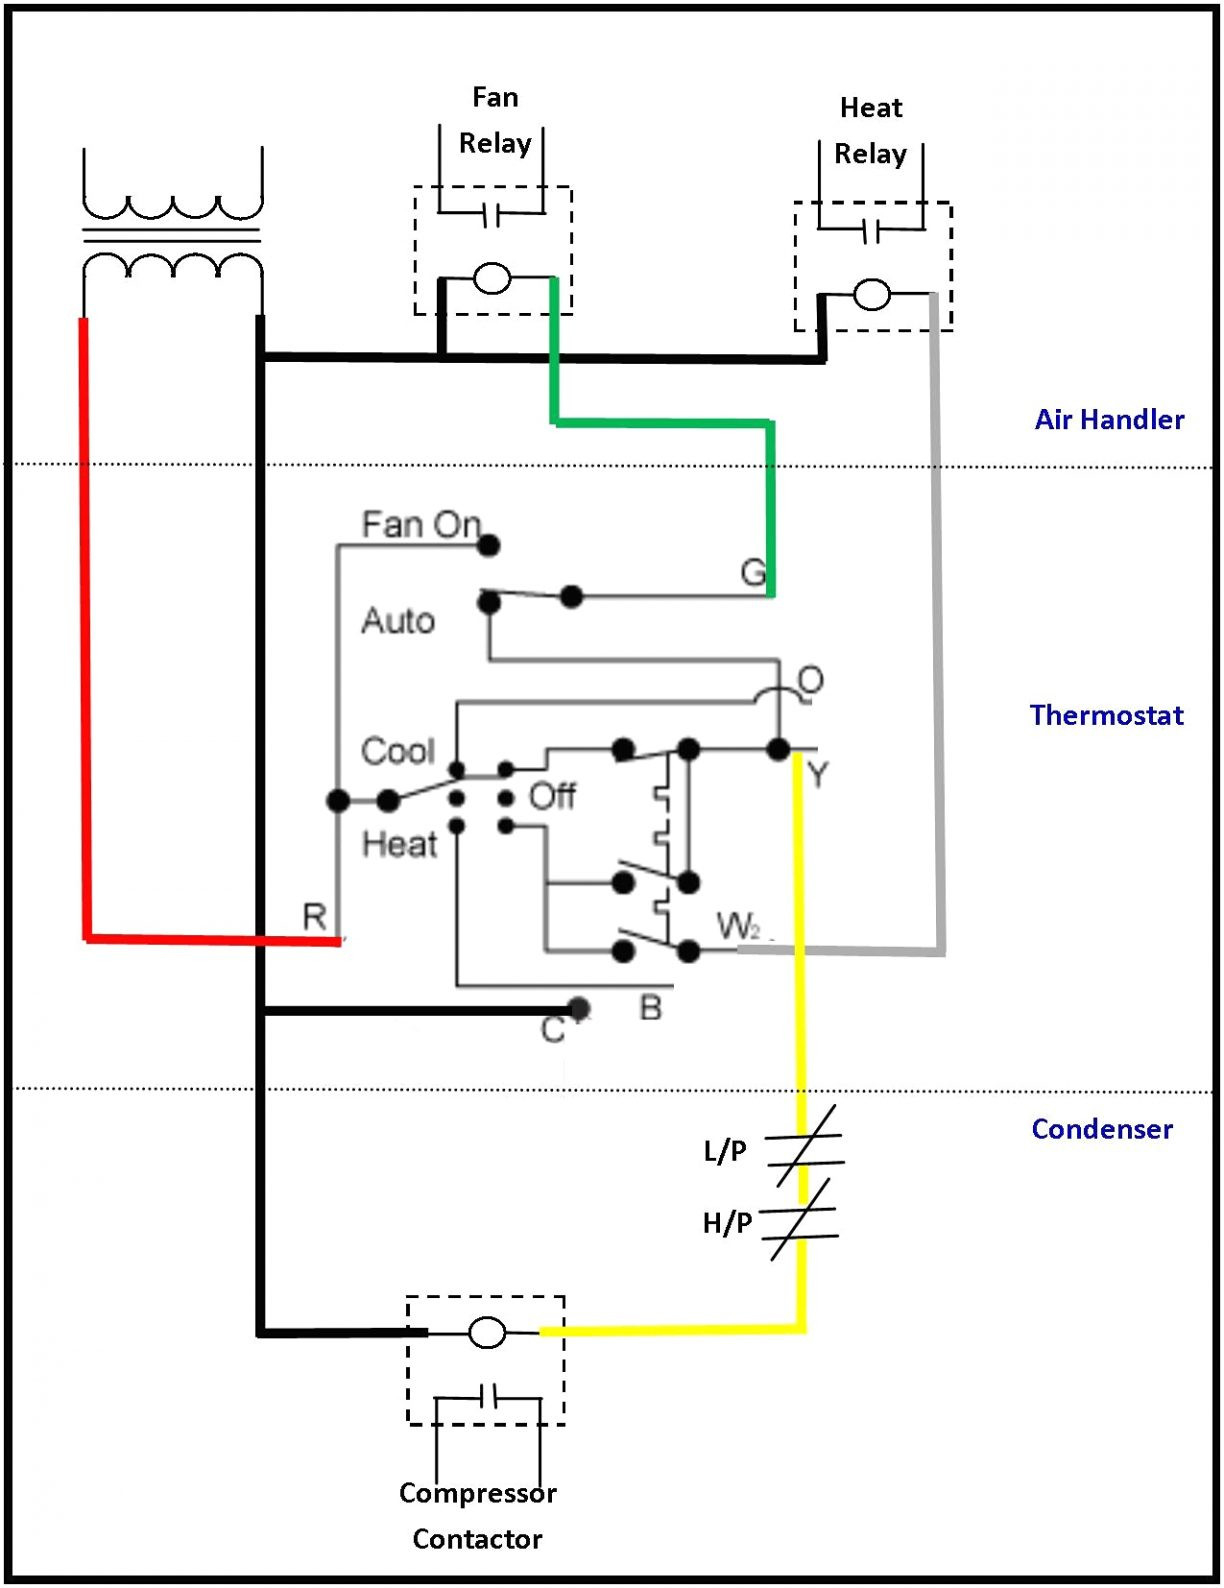 Wiring Diagrams Air Conditioners - Wiring Diagram Rows on thermostat wire roll, thermostat wire colors, robertshaw thermostat, water heater thermostat, thermostat relay, trane thermostat, thermostat clip art, defrost thermostat, thermostat control, honeywell thermostat, thermostat c wire, honeywell programmable thermostat, programmable thermostat, electronic thermostat, thermostat parts, thermostat piping, thermostat switch, heat pump thermostat, thermostat regulator, thermostat thermistor, thermostat cover, thermostat hose, thermostat terminals, thermostat troubleshooting, carrier thermostat, line voltage thermostat, digital thermostat, thermostat hookup, thermostat replacement, thermostat installation, thermostat harness, thermostat schematic, wireless thermostat, thermostat controls, thermostat covers,